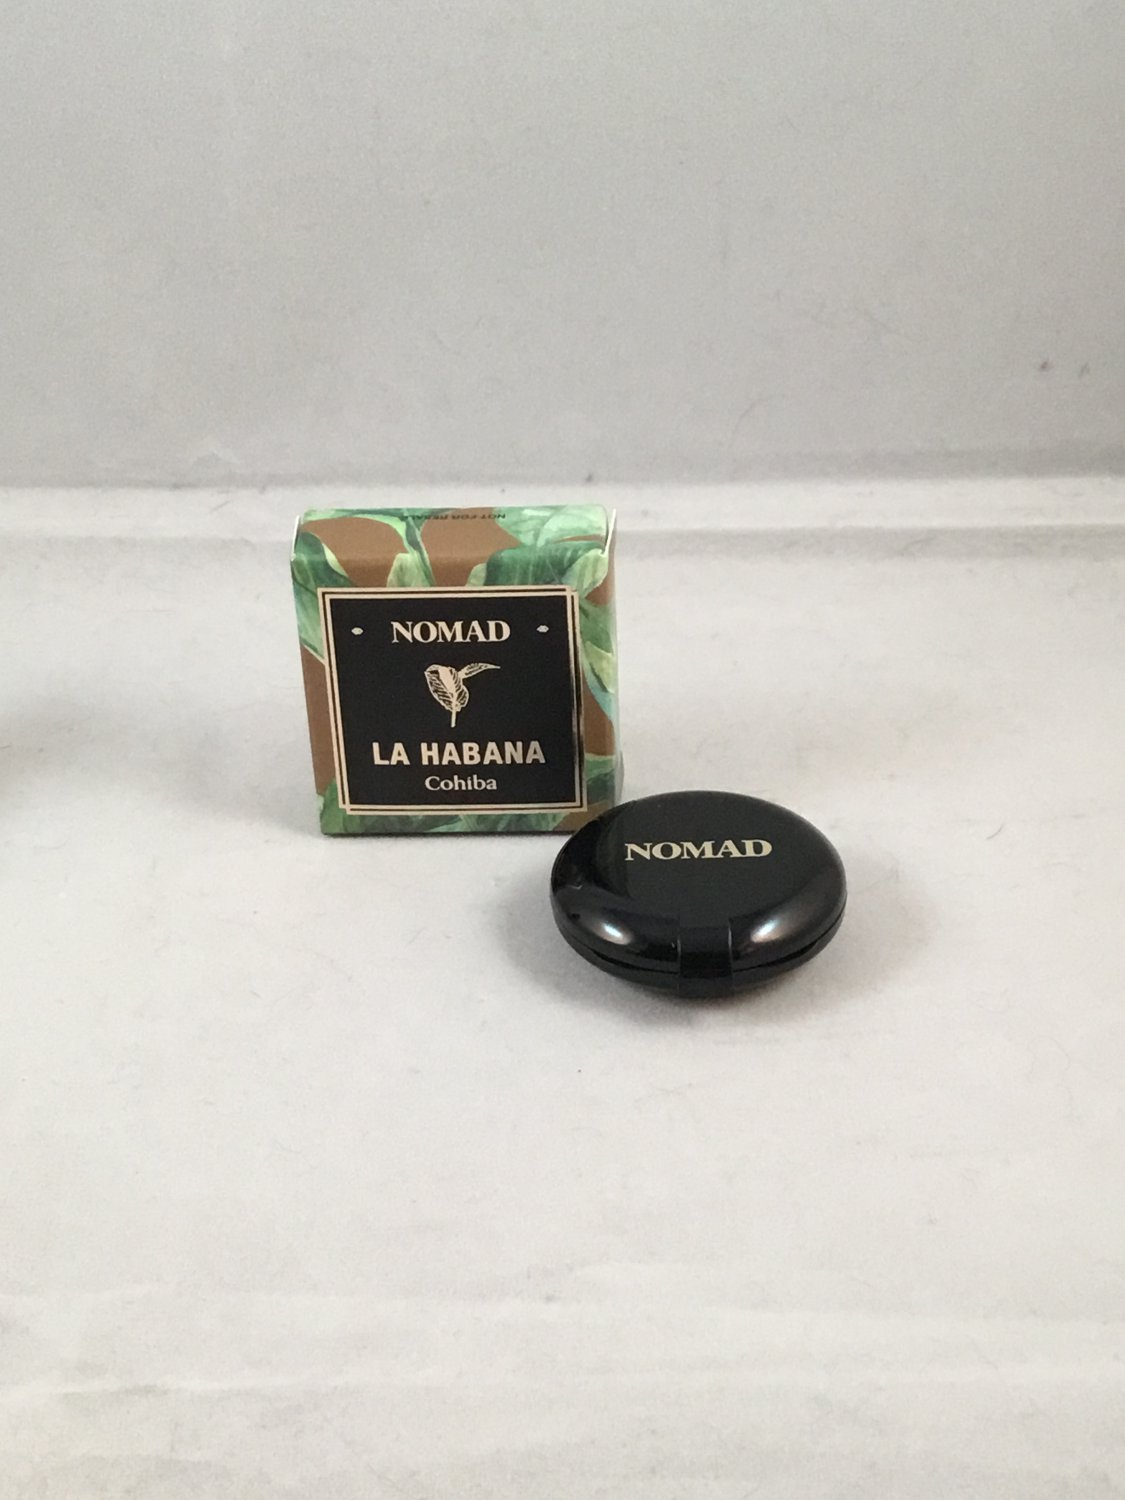 Nomad Havana Intense Eyeshadow Cohiba Travel Size La Habana Eye Shadow